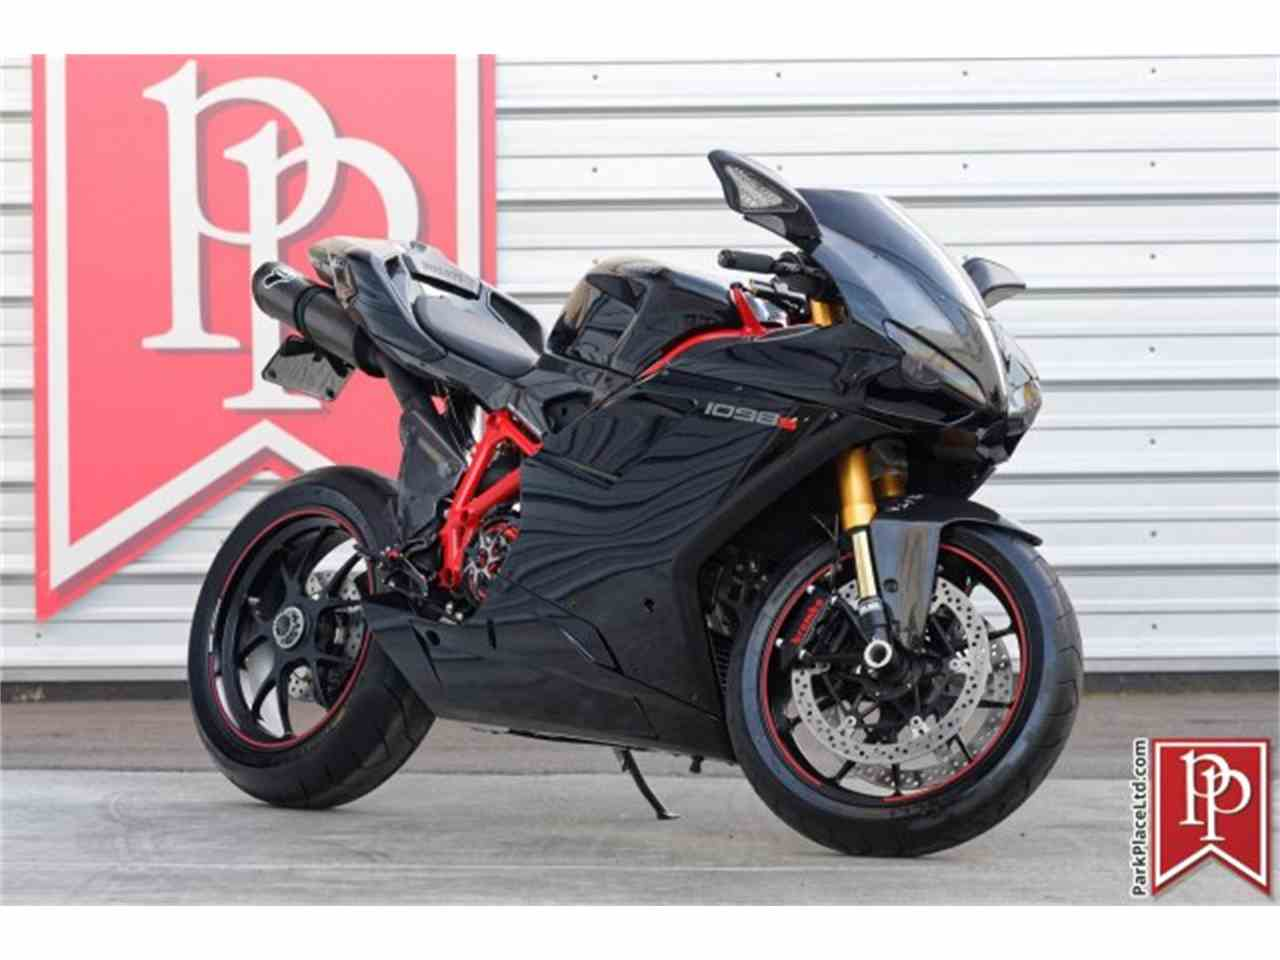 Large Picture of '08 Motorcycle located in Bellevue Washington - $16,950.00 Offered by Park Place Ltd - MZF6